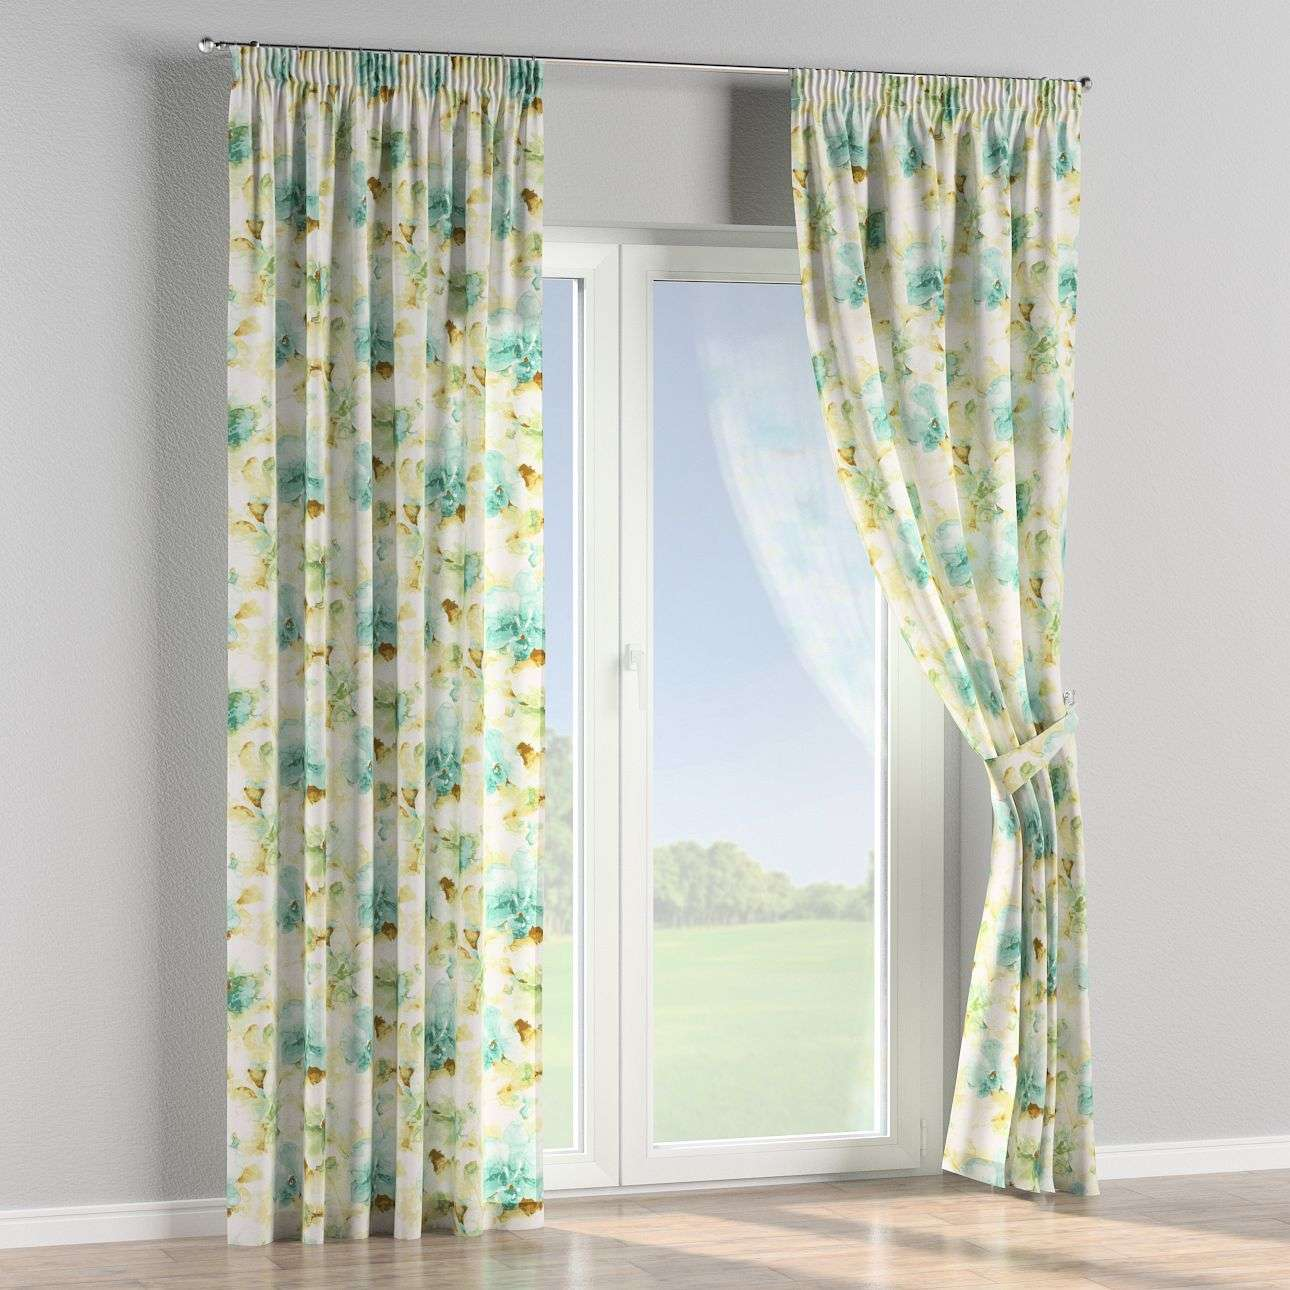 Pencil pleat curtains 130 x 260 cm (51 x 102 inch) in collection Acapulco, fabric: 141-35